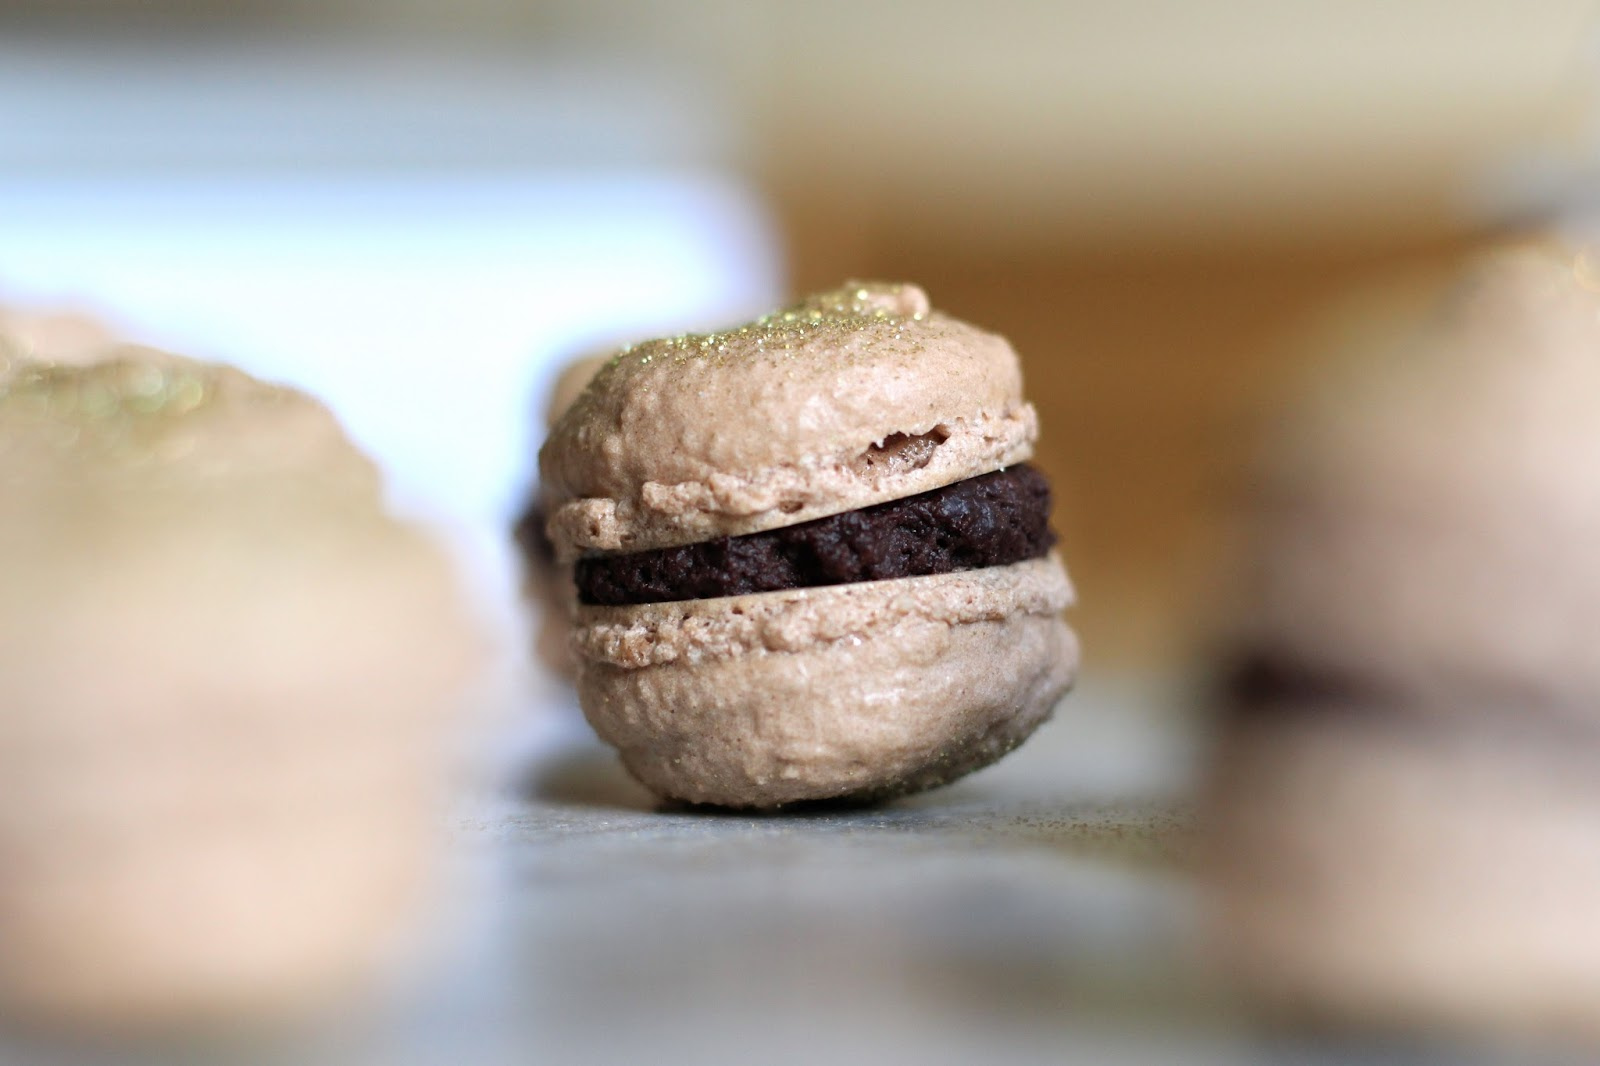 Mon Dessert chocolate macarons made from home